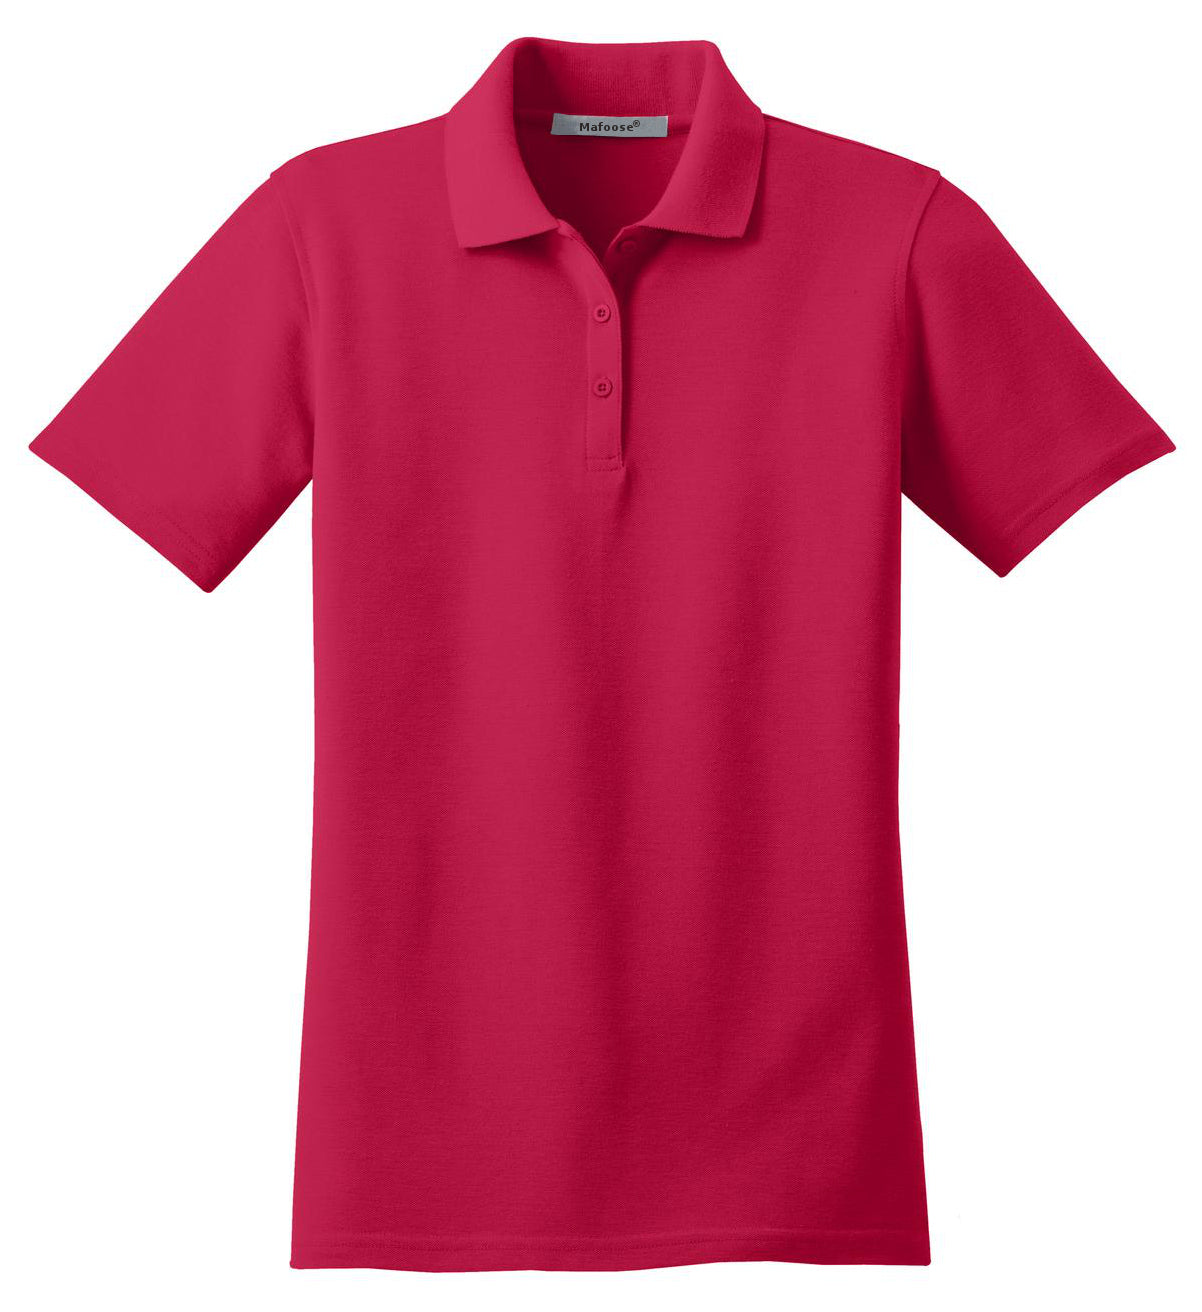 Mafoose Women's Stain Resistant Polo Shirt Red-Front